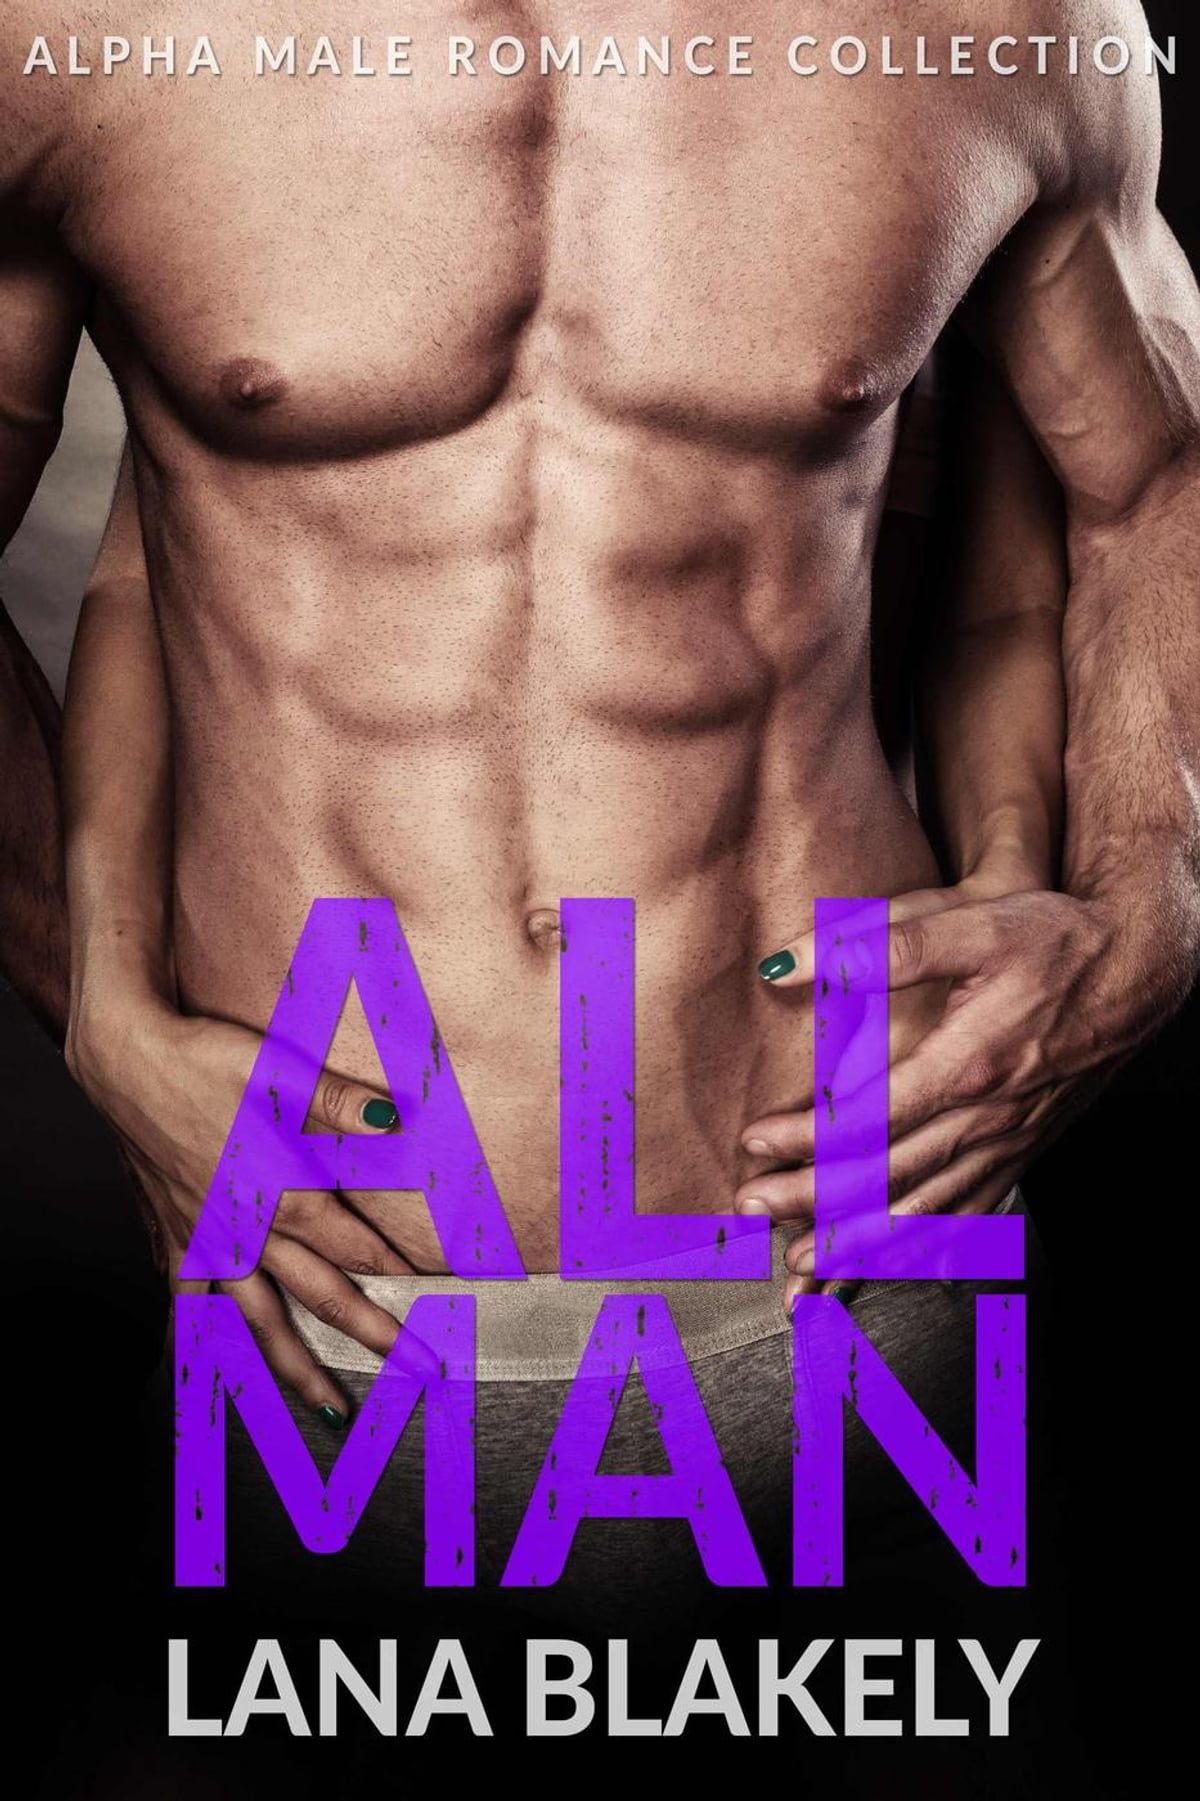 from Junior dating an alpha male ebook collection